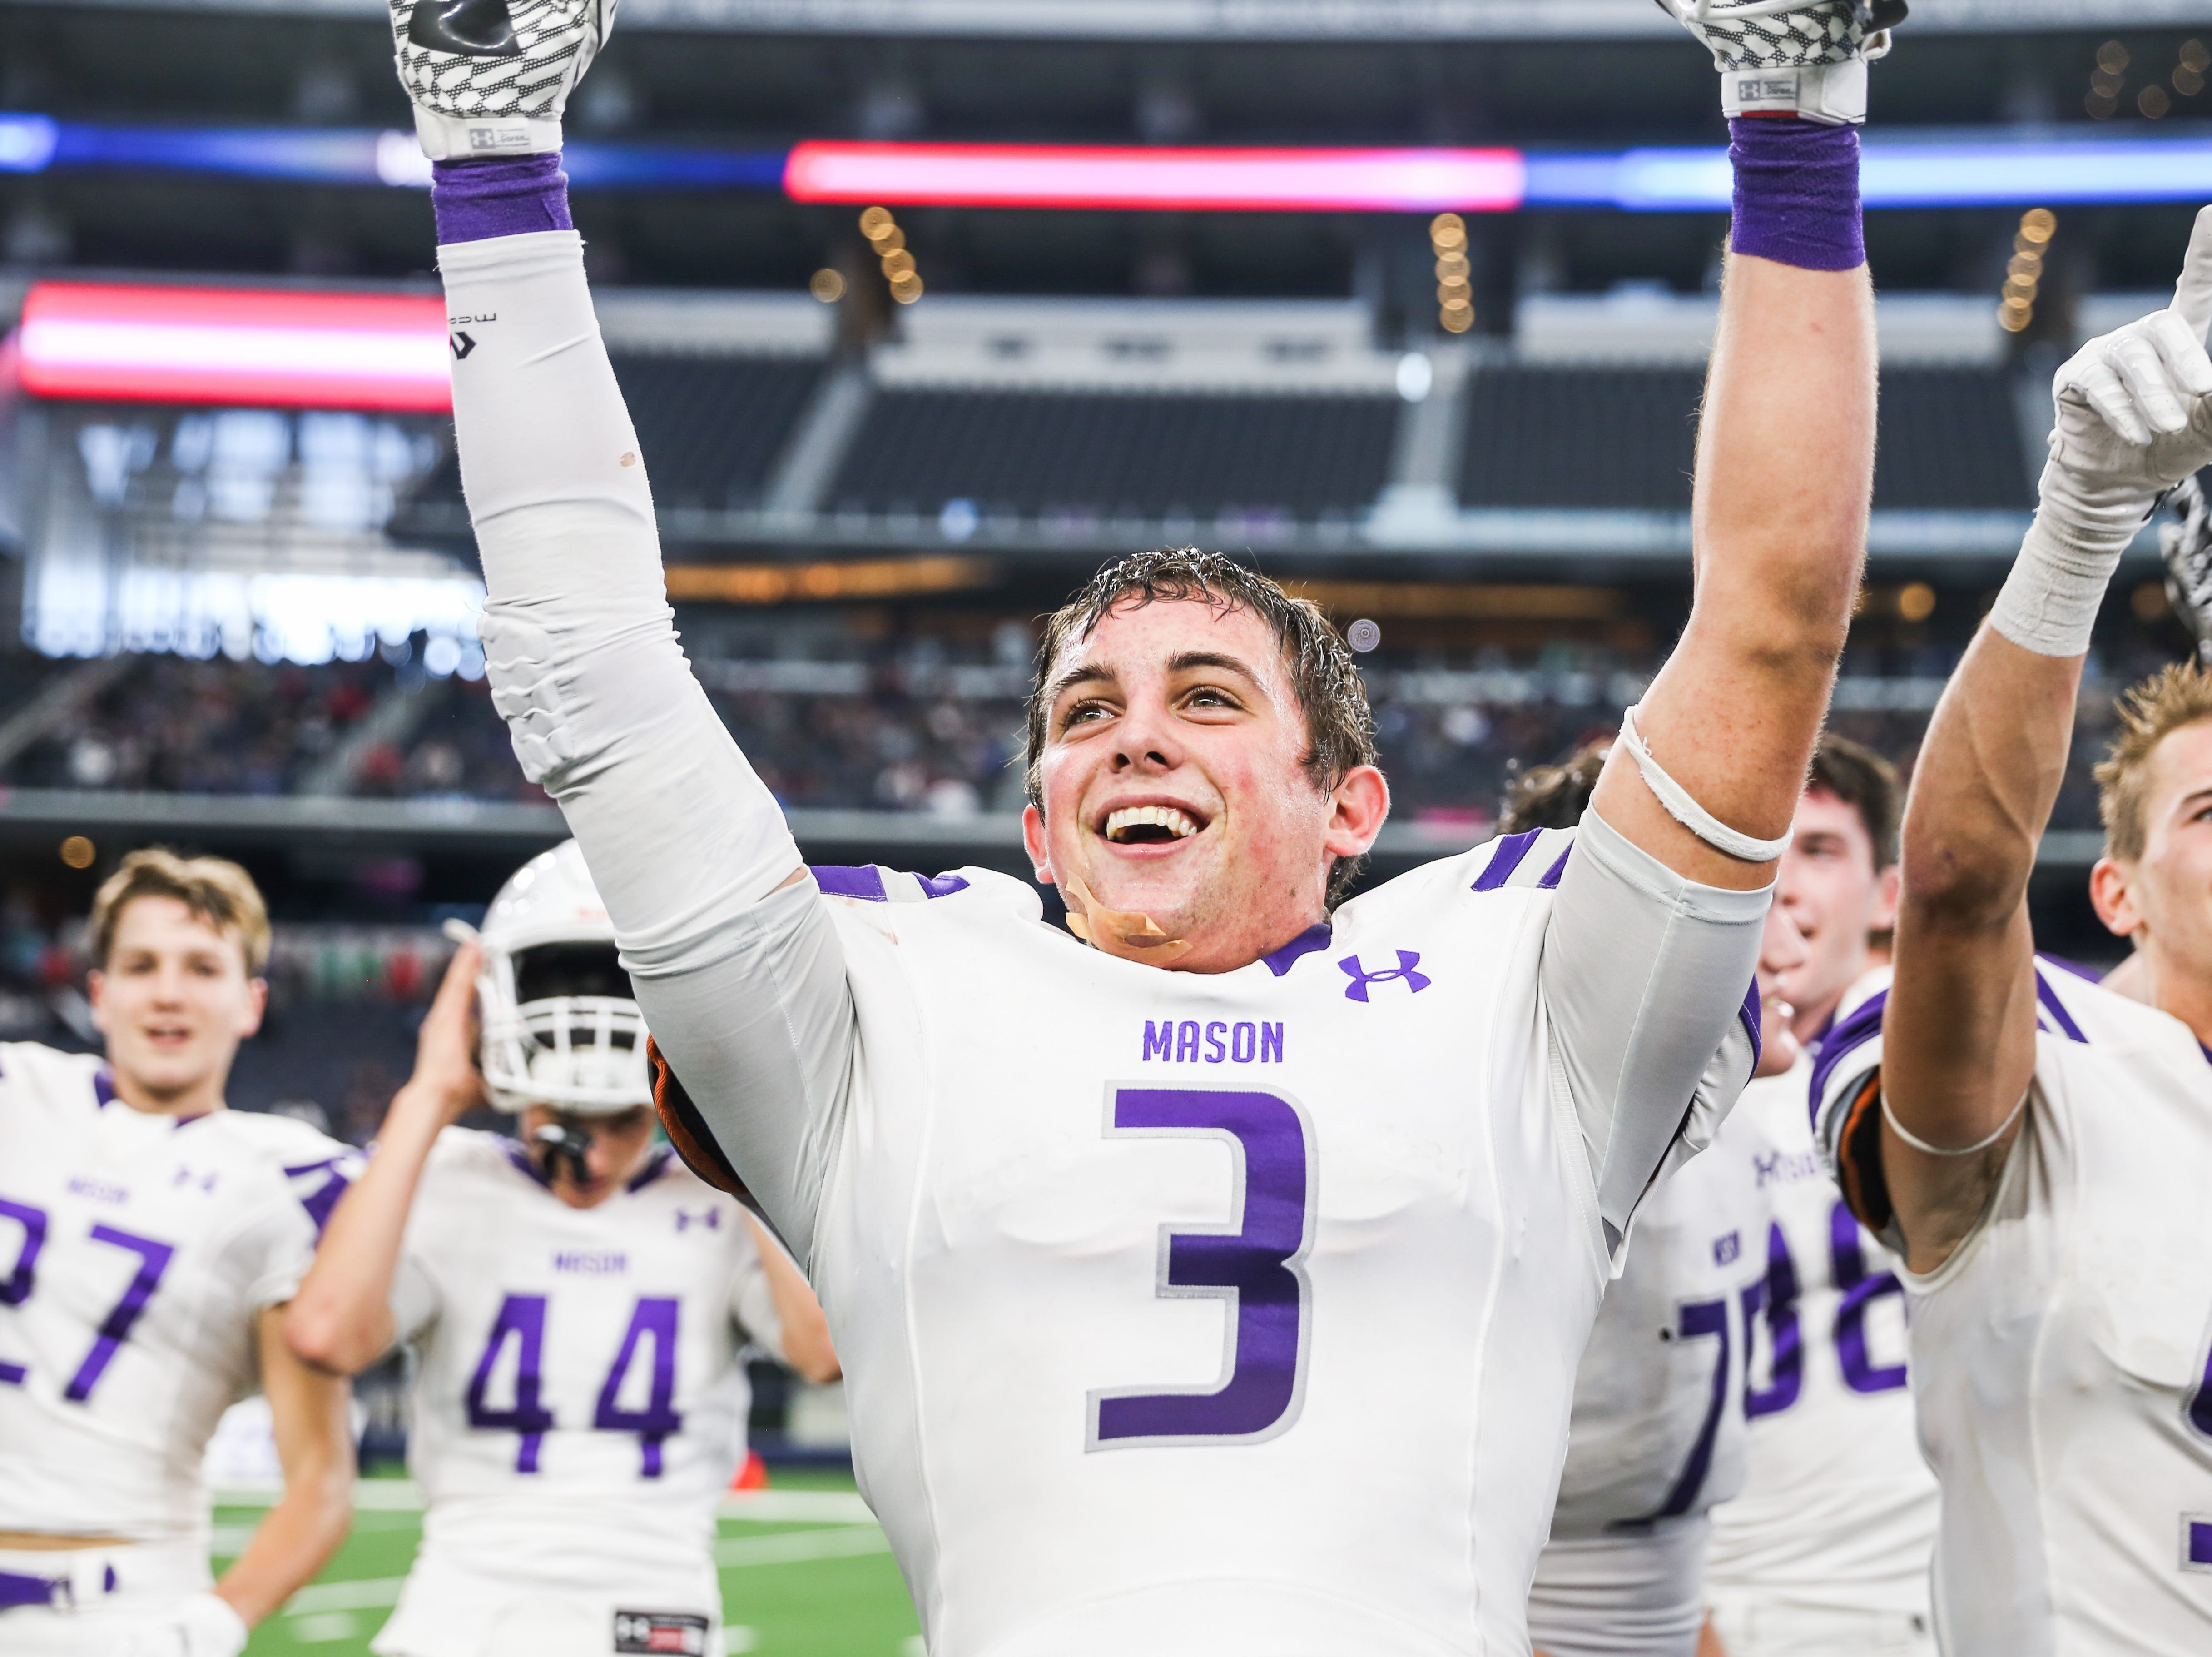 Mason Rudy Rochat cheer as they win the state finals game against New Deal Thursday, Dec. 20, at the AT&T Stadium.